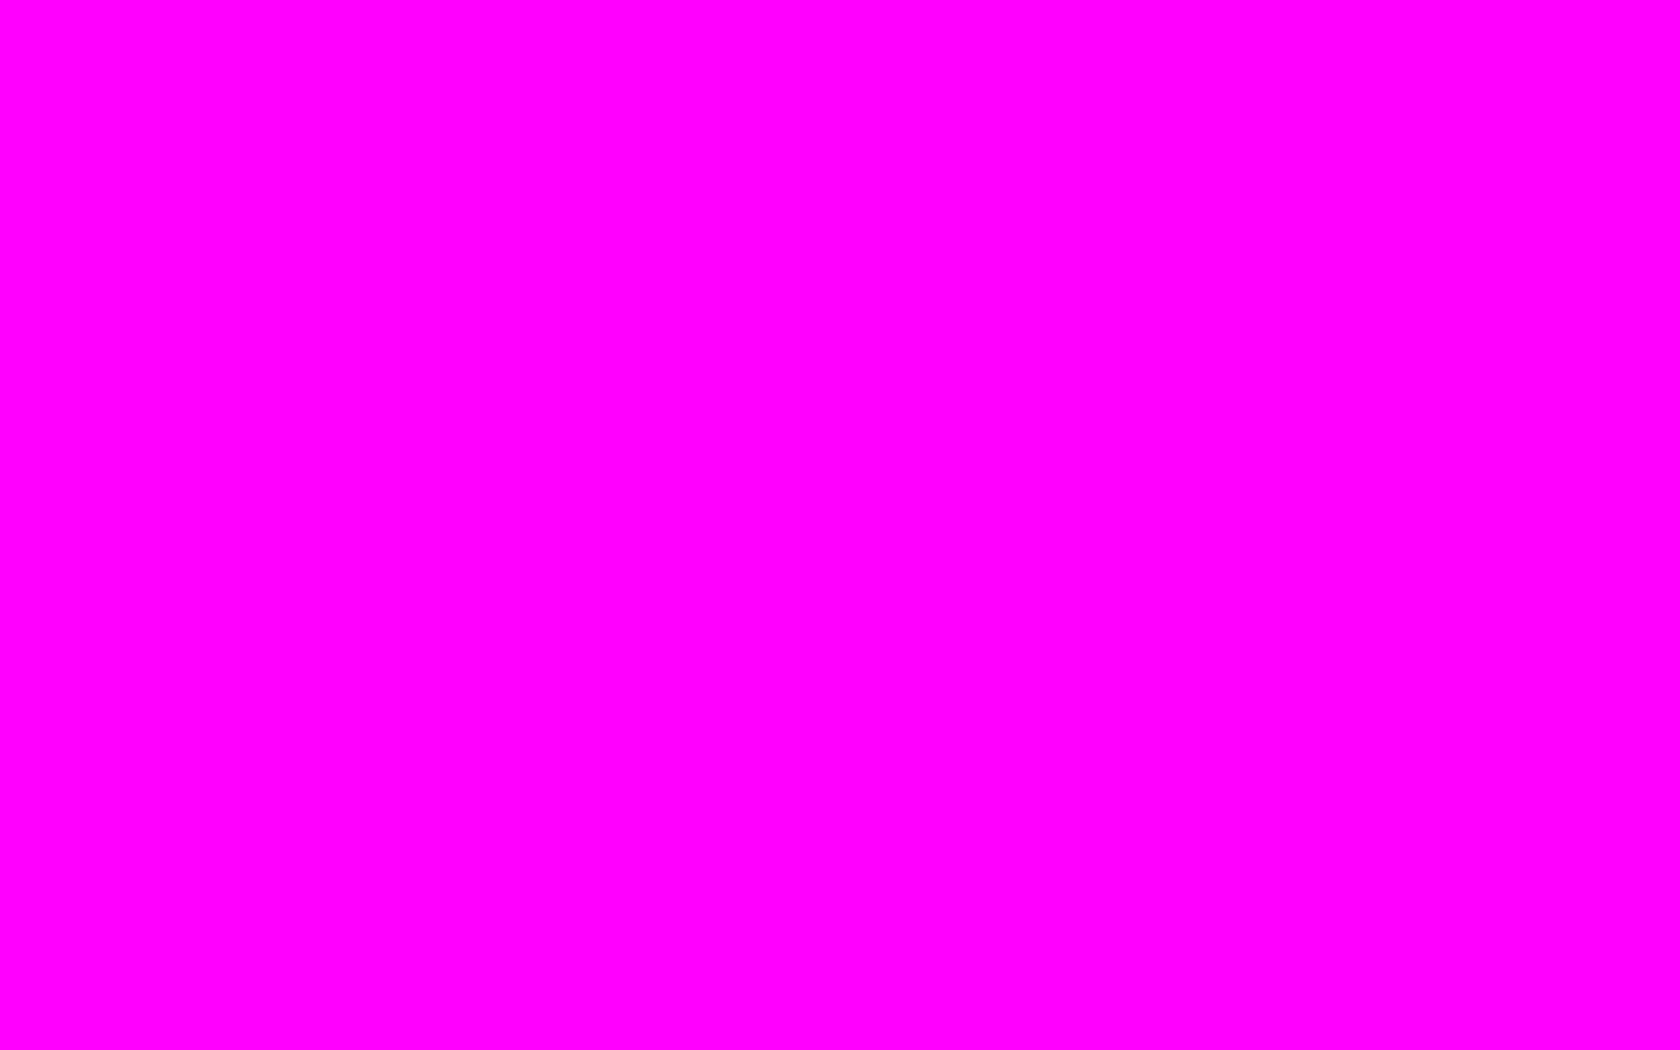 1680x1050 Magenta Solid Color Background